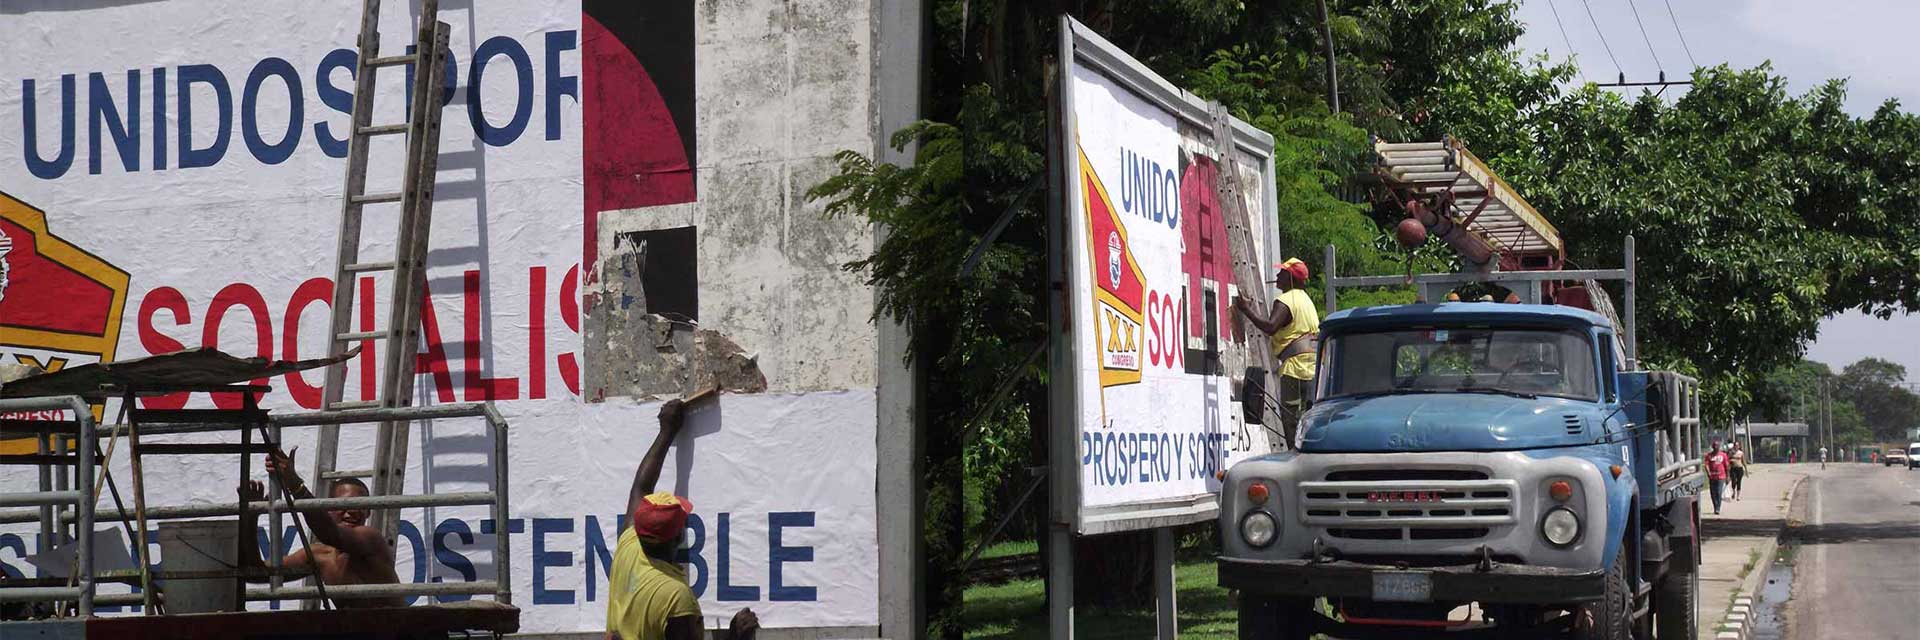 Poster in Havana United for a prosperous and sustainable socialism 2013